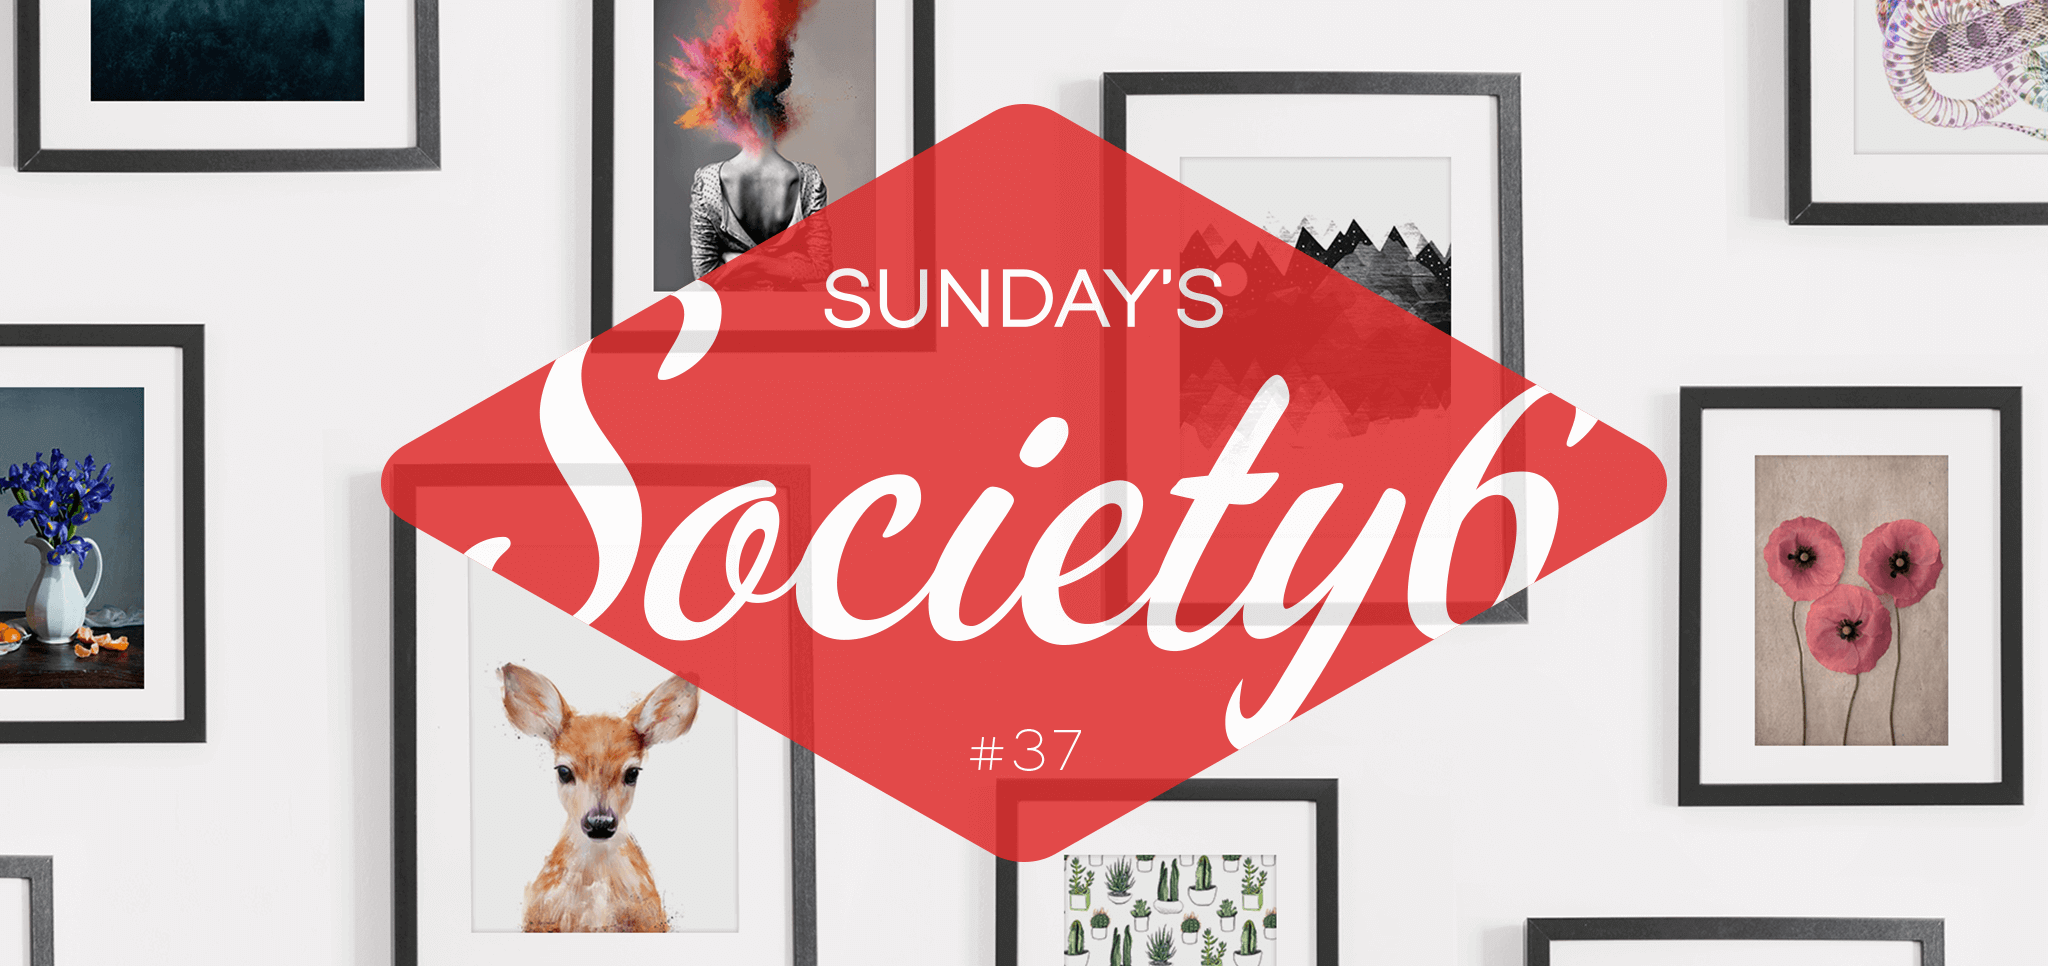 Sunday's Society6 #37 | Winter wonderland